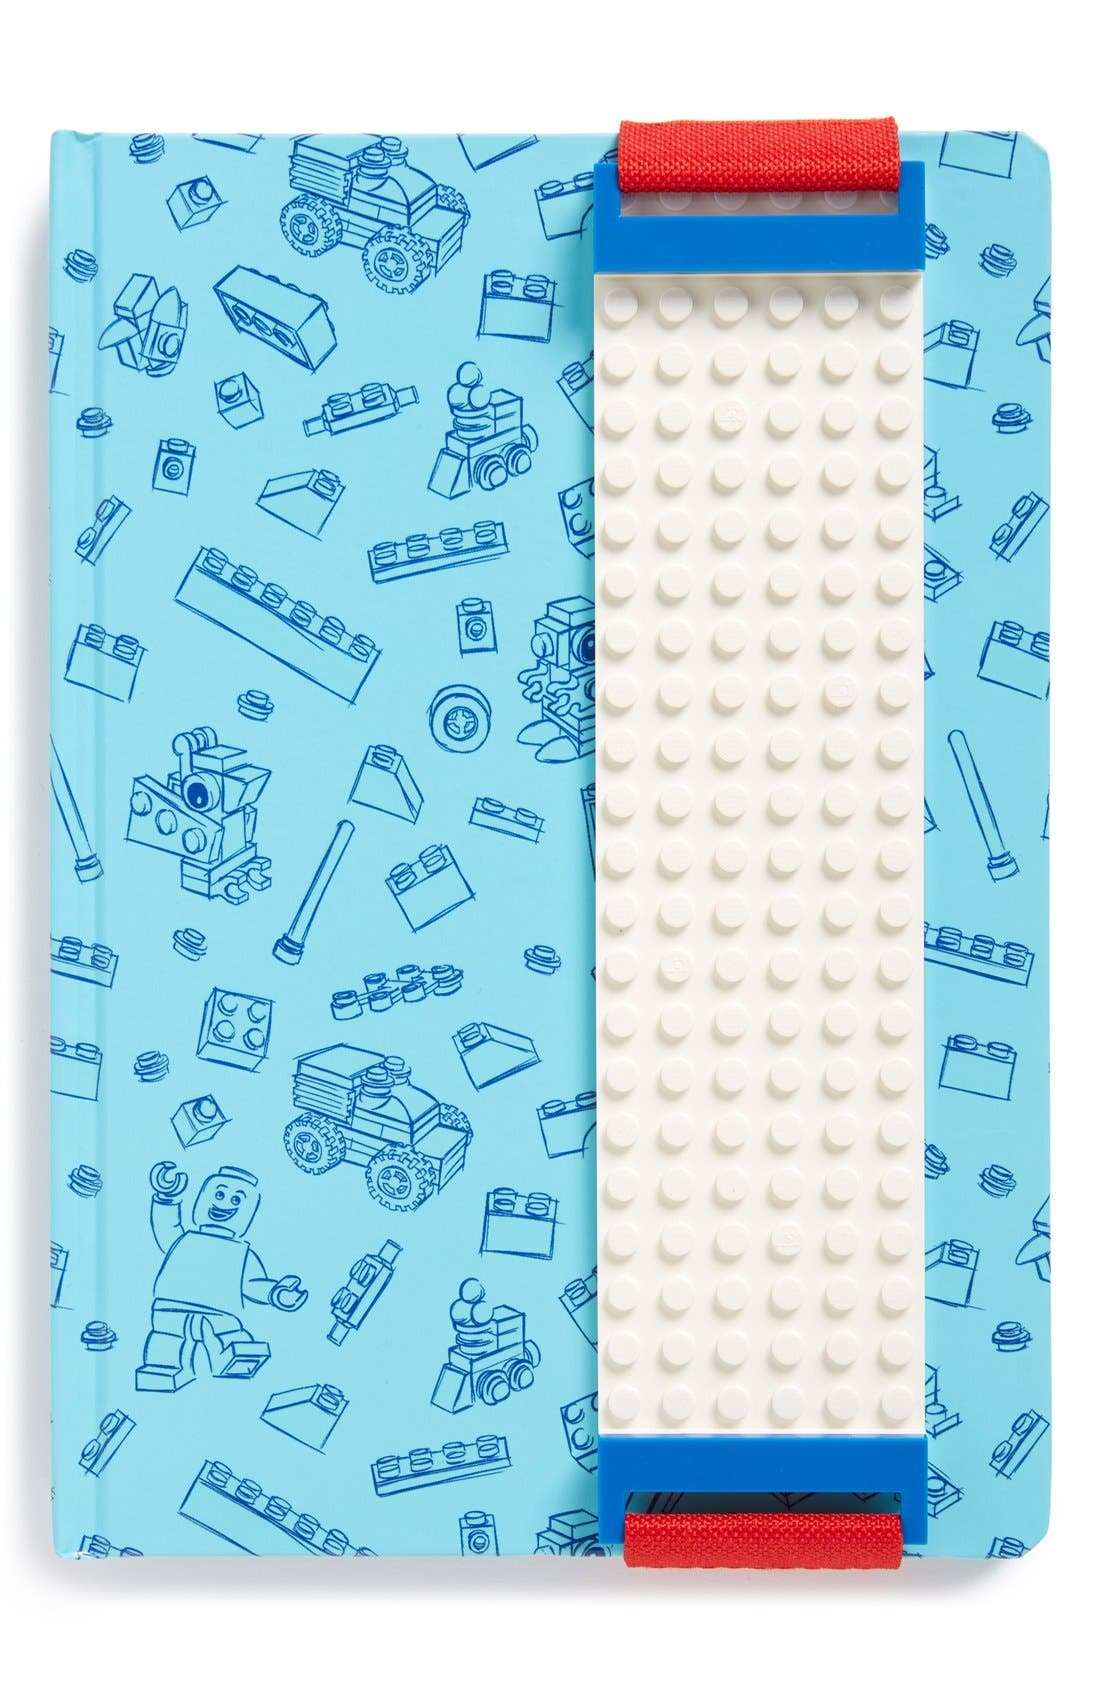 Main Image - LEGO® Blue Journal with White Band